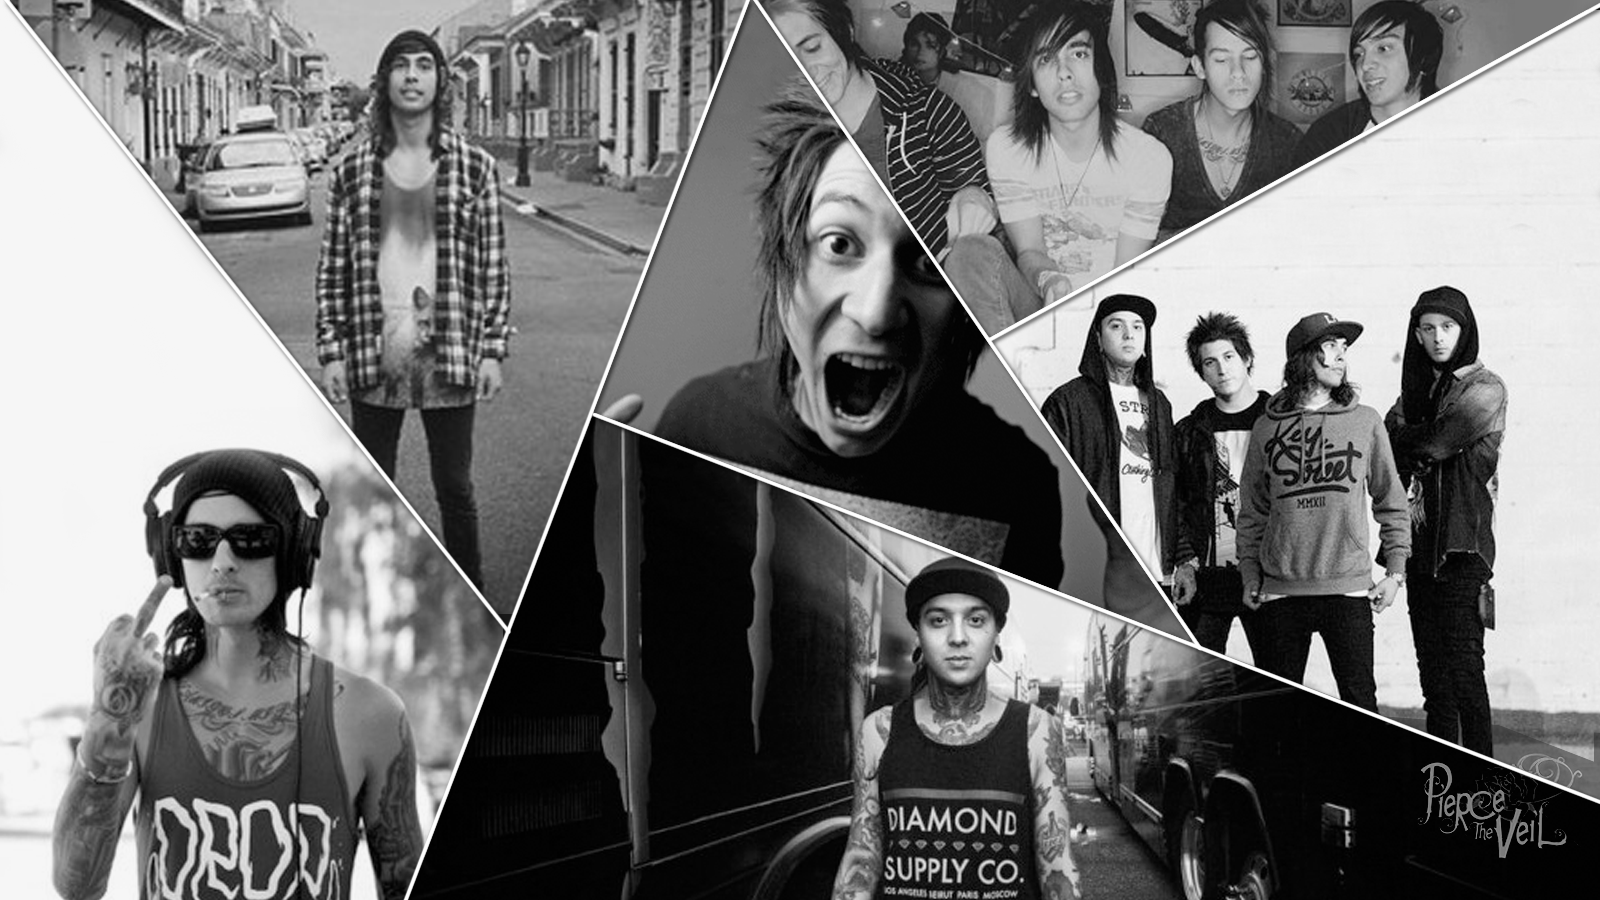 Free Download Deviantart More Like Pierce The Veil Wallpaper By